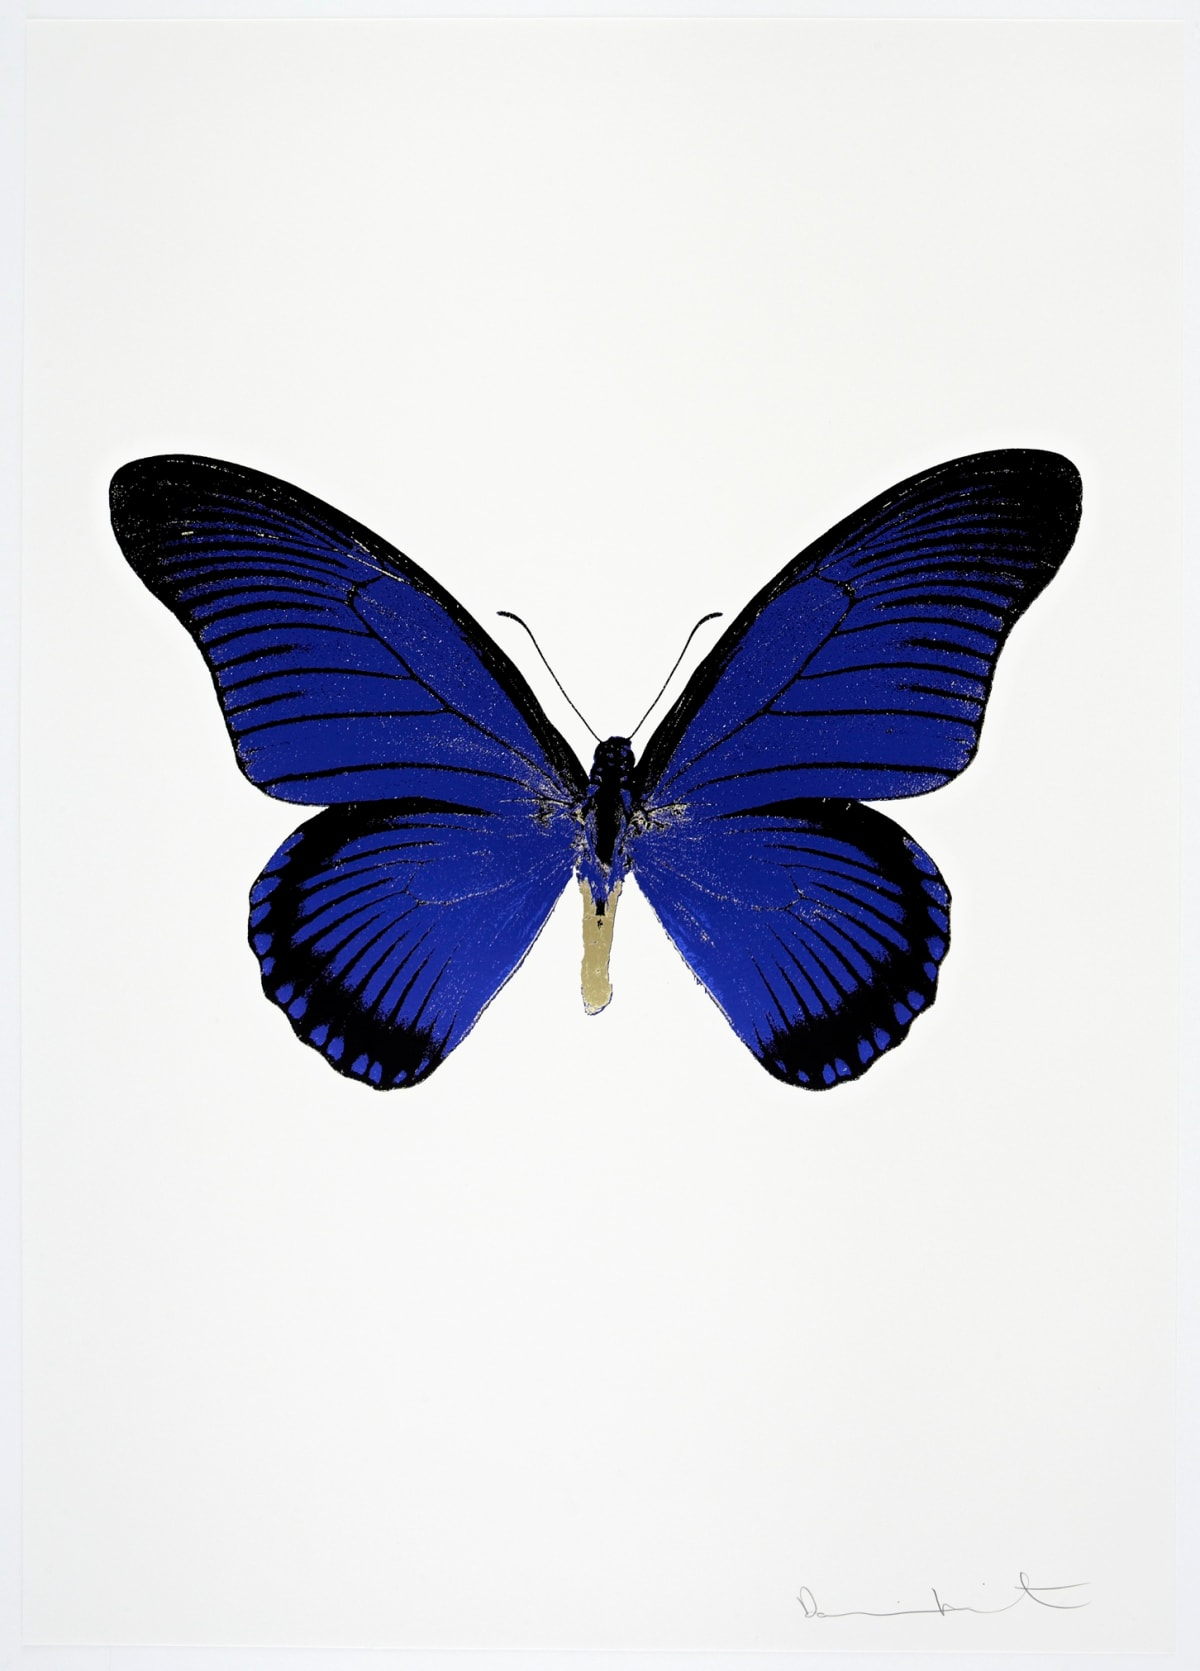 Damien Hirst The Souls IV - Westminster Blue/Raven Black/Cool Gold, 2010 3 colour foil block on 300gsm Arches 88 archival paper. Signed and numbered. Published by Paul Stolper and Other Criteria 72 x 51cm OC8044 / 1418-67 Edition of 15